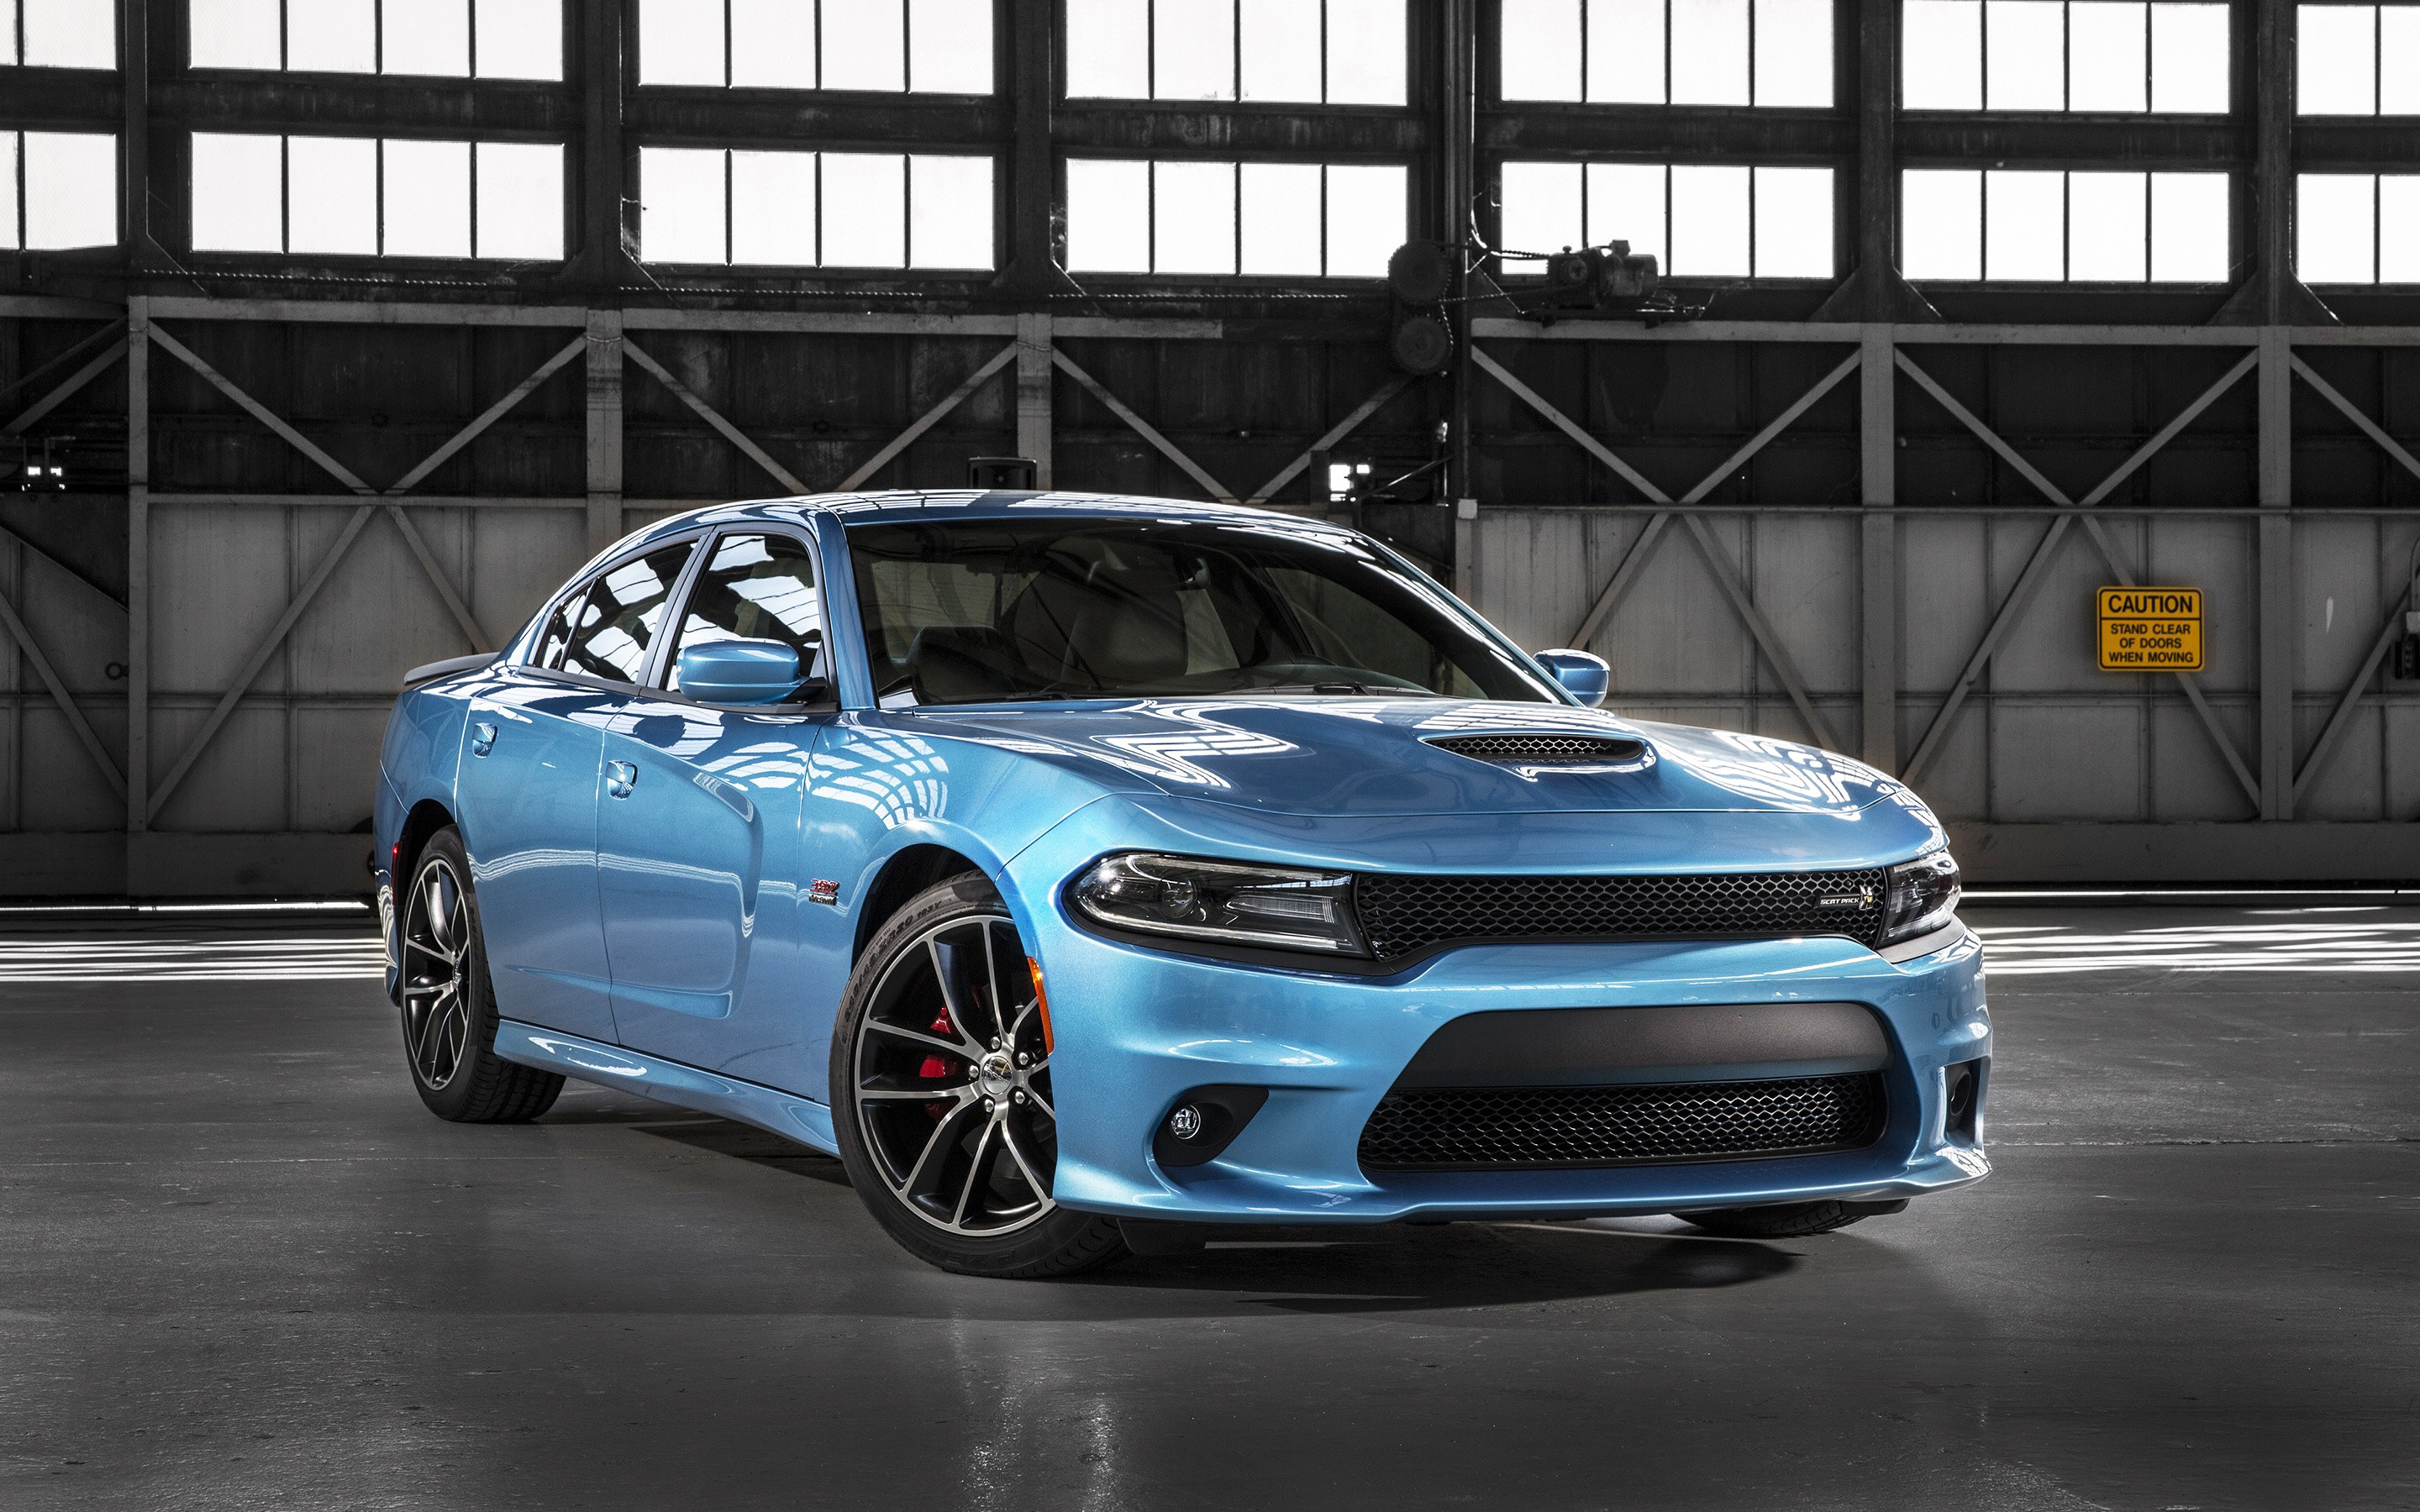 Dodge Charger RT Scat Pack WallPaper HD – https://imashon.com/